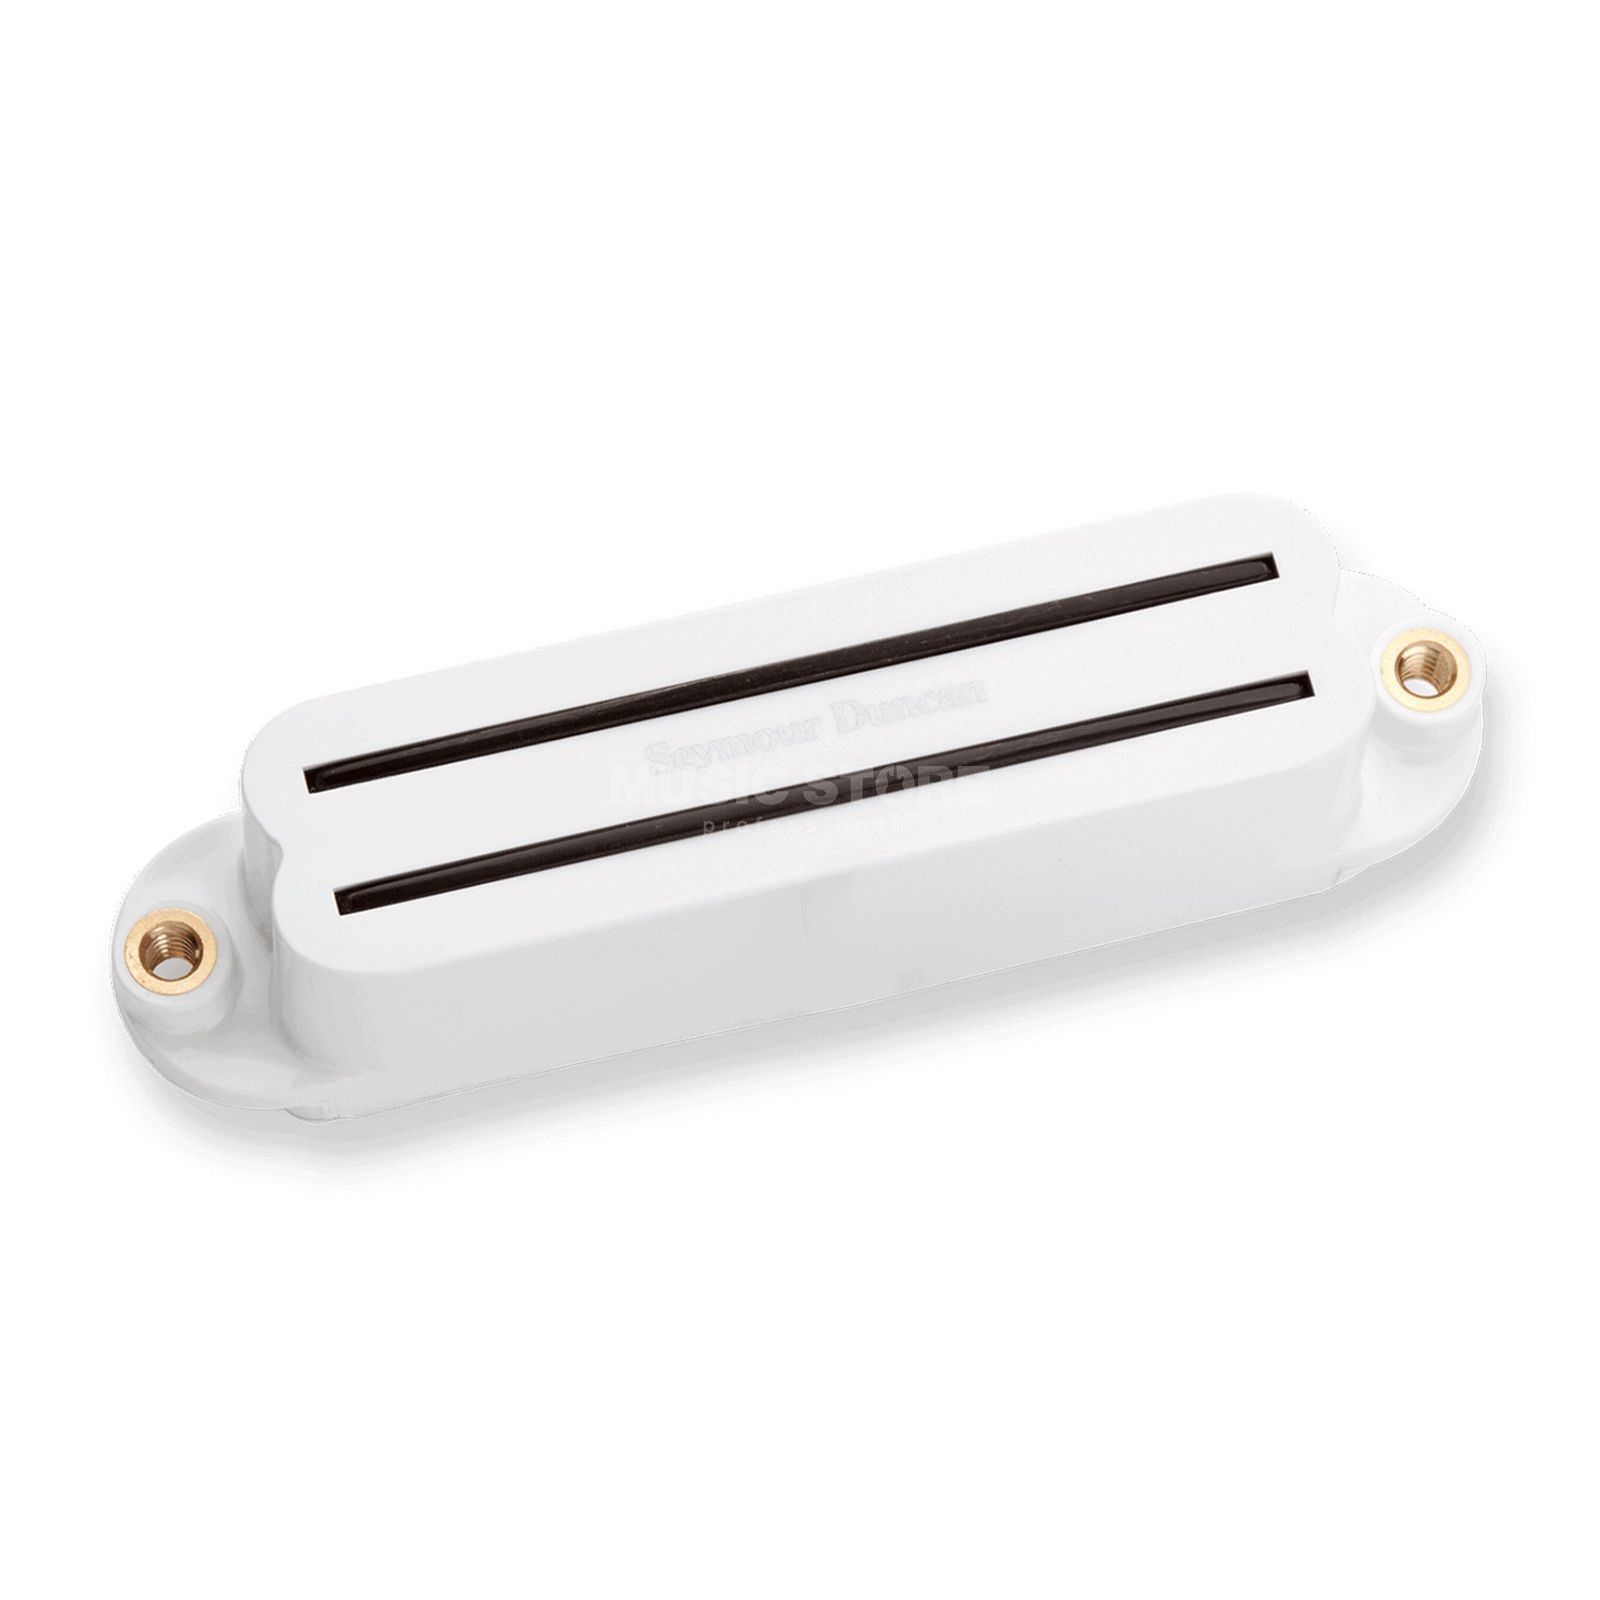 Seymour Duncan Strat Hot Rail Neck white 4-phase Produktbillede